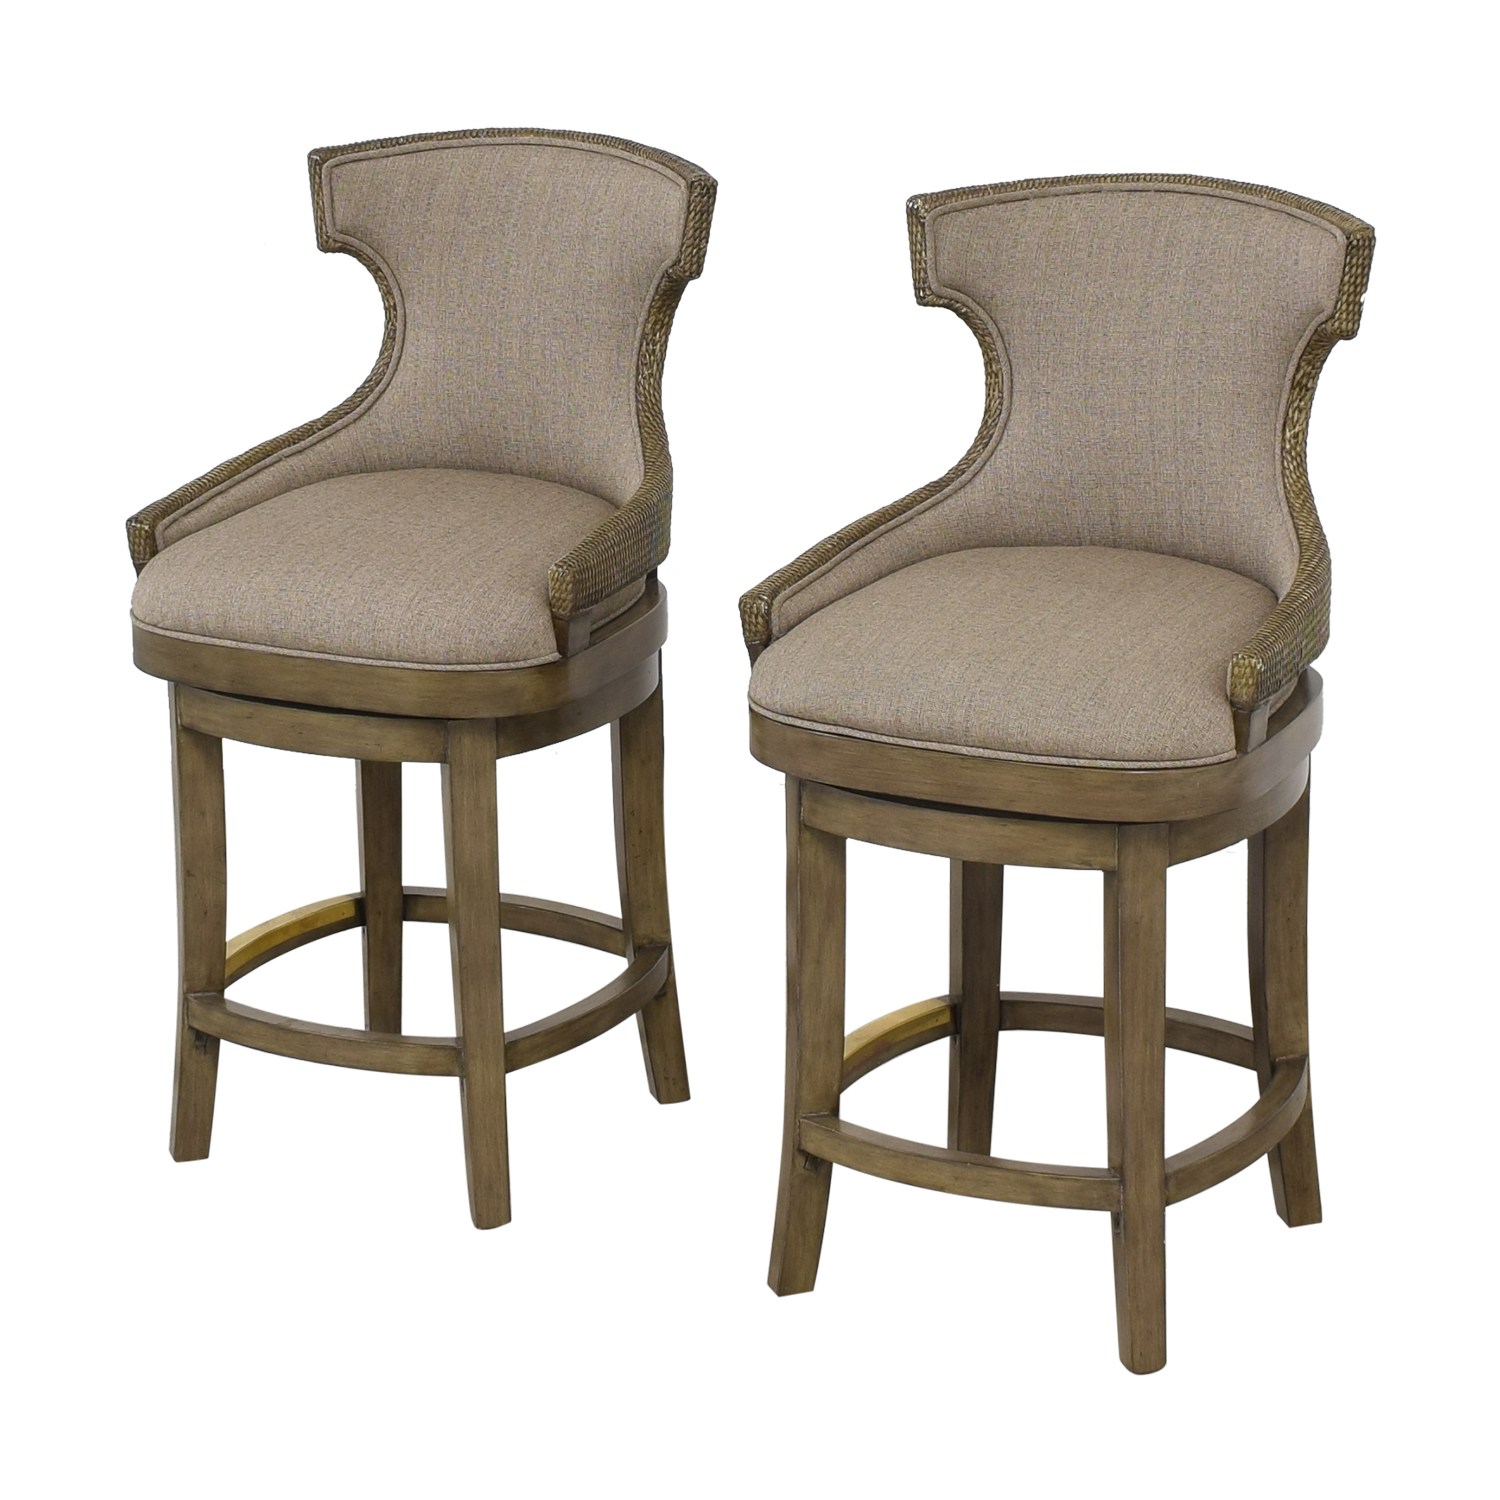 PI Inc Upholstered Swivel Bar Stools sale